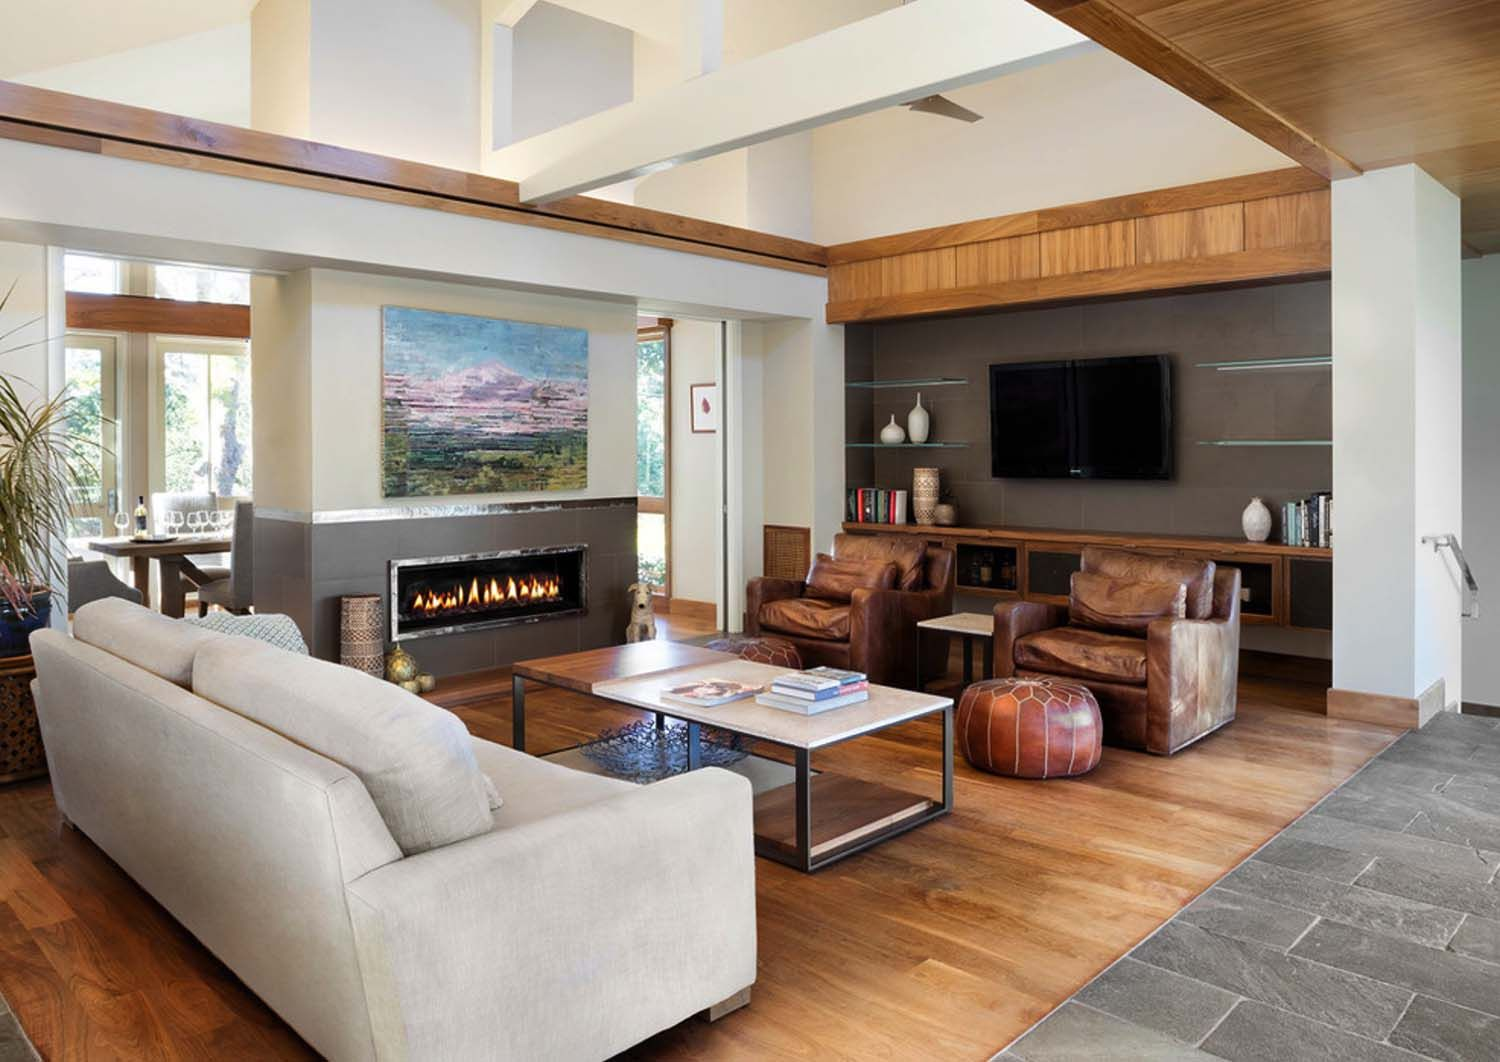 Leed Platinum Contemporary Ranch House In Northern California Ranch House Living Room Designs Modern Living Room Interior #ranch #living #room #ideas